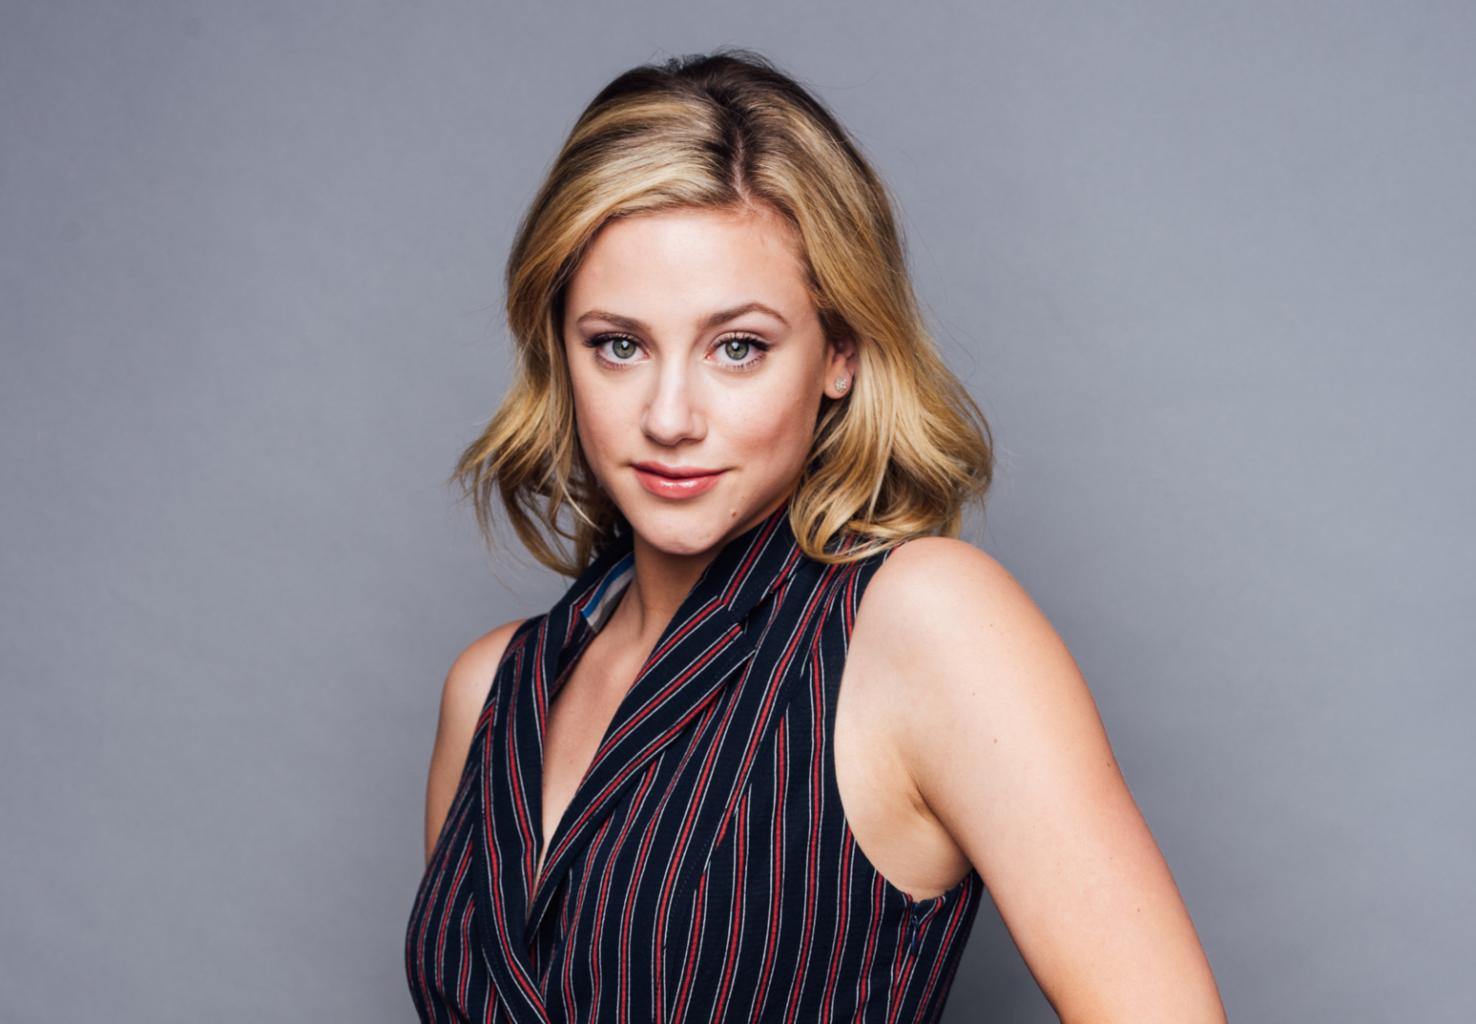 Lili Reinhart Dishes On 'Riverdale' Co-Stars, Reveals Celebrity Crush And More